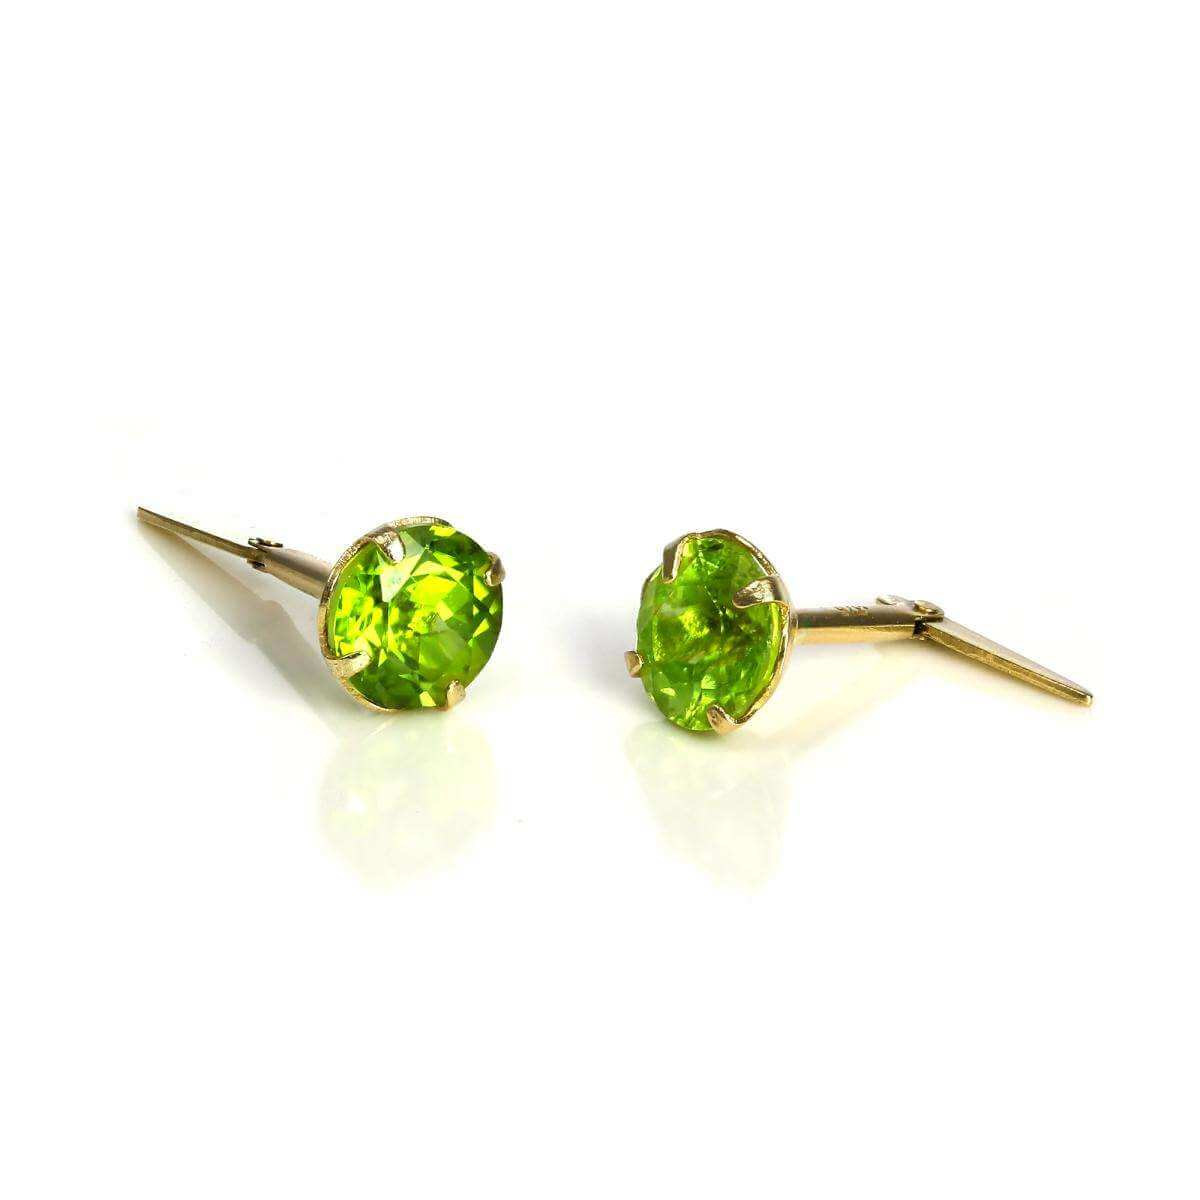 9ct Gold & 5mm Peridot Gemstone Andralok Stud Earrings